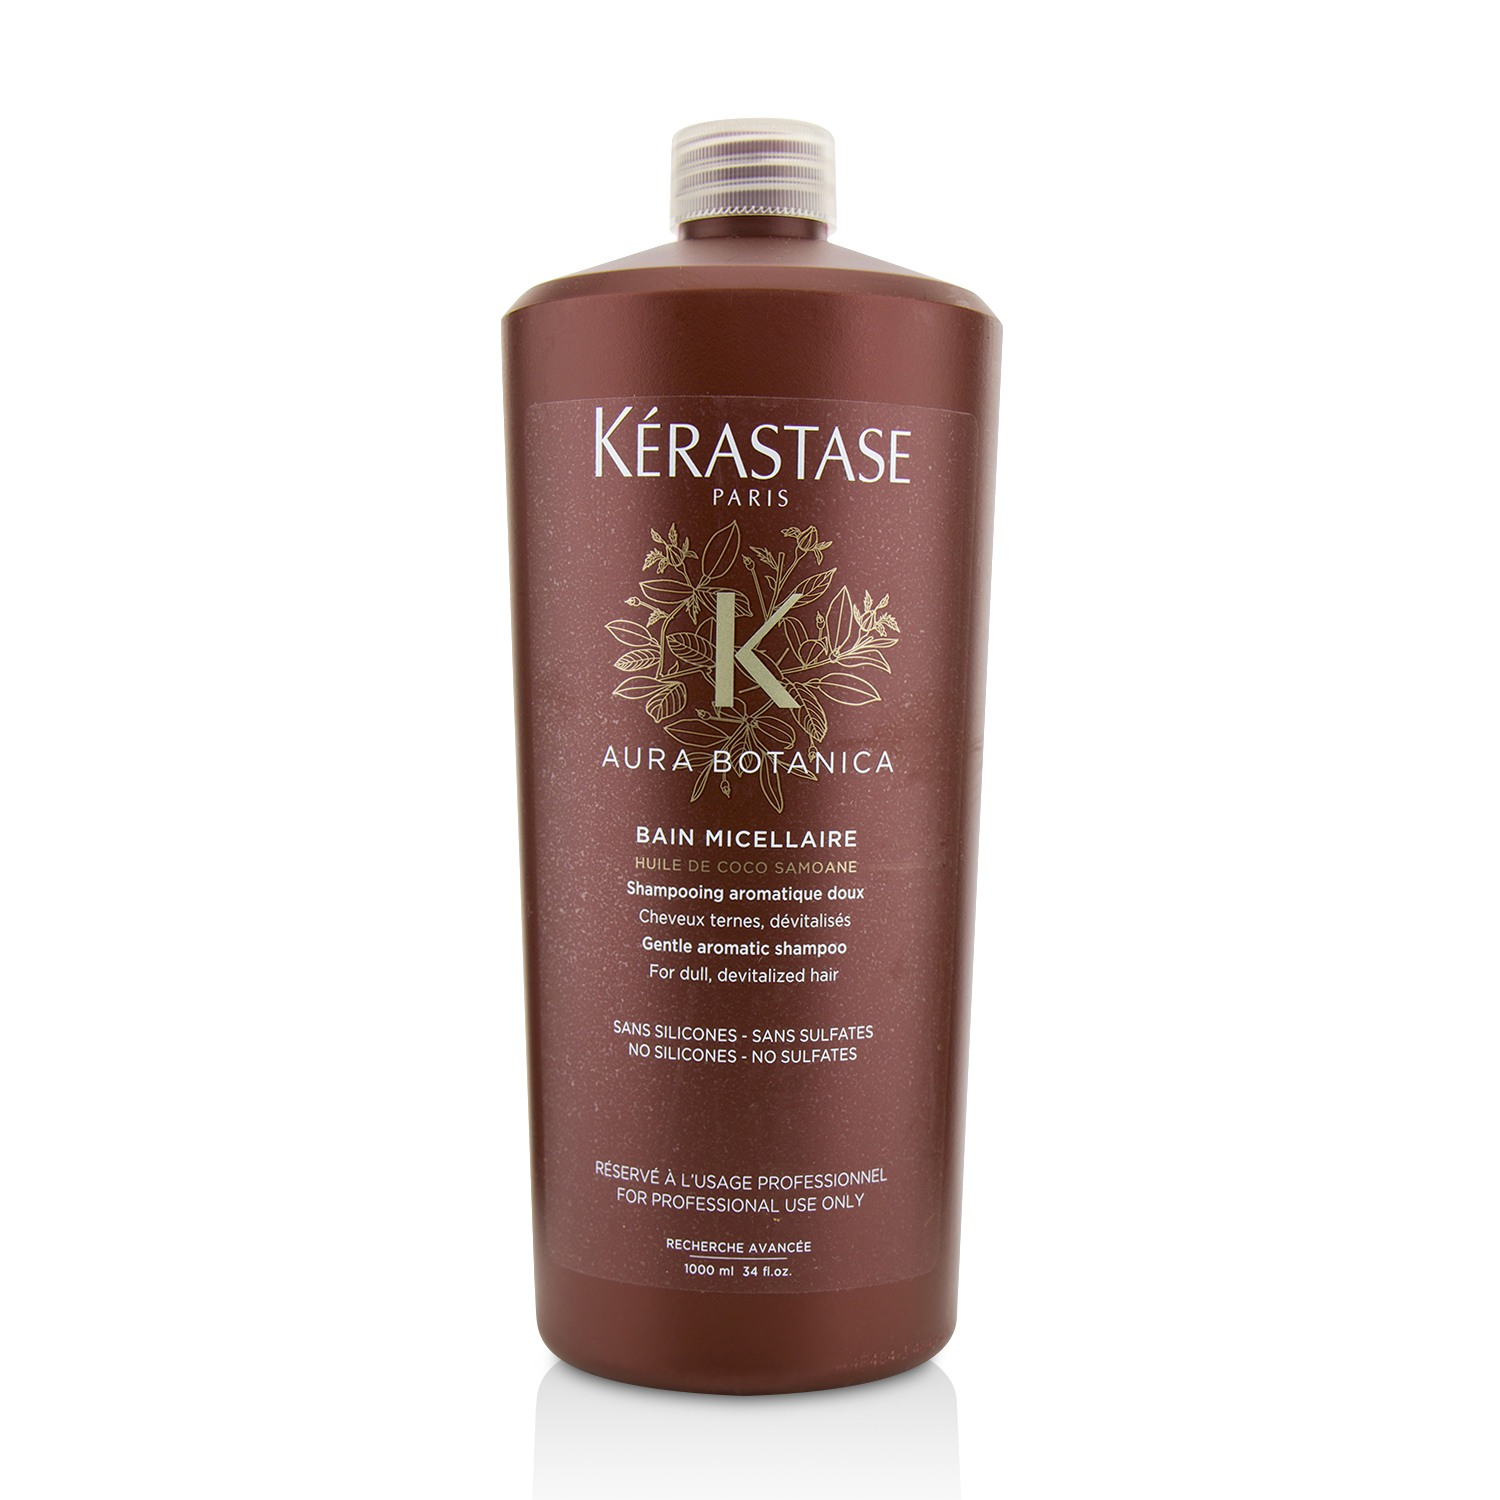 Aura Botanica Bain Micellaire Gentle Aromatic Shampoo (For Dull Devitalized Hair) Kerastase Image